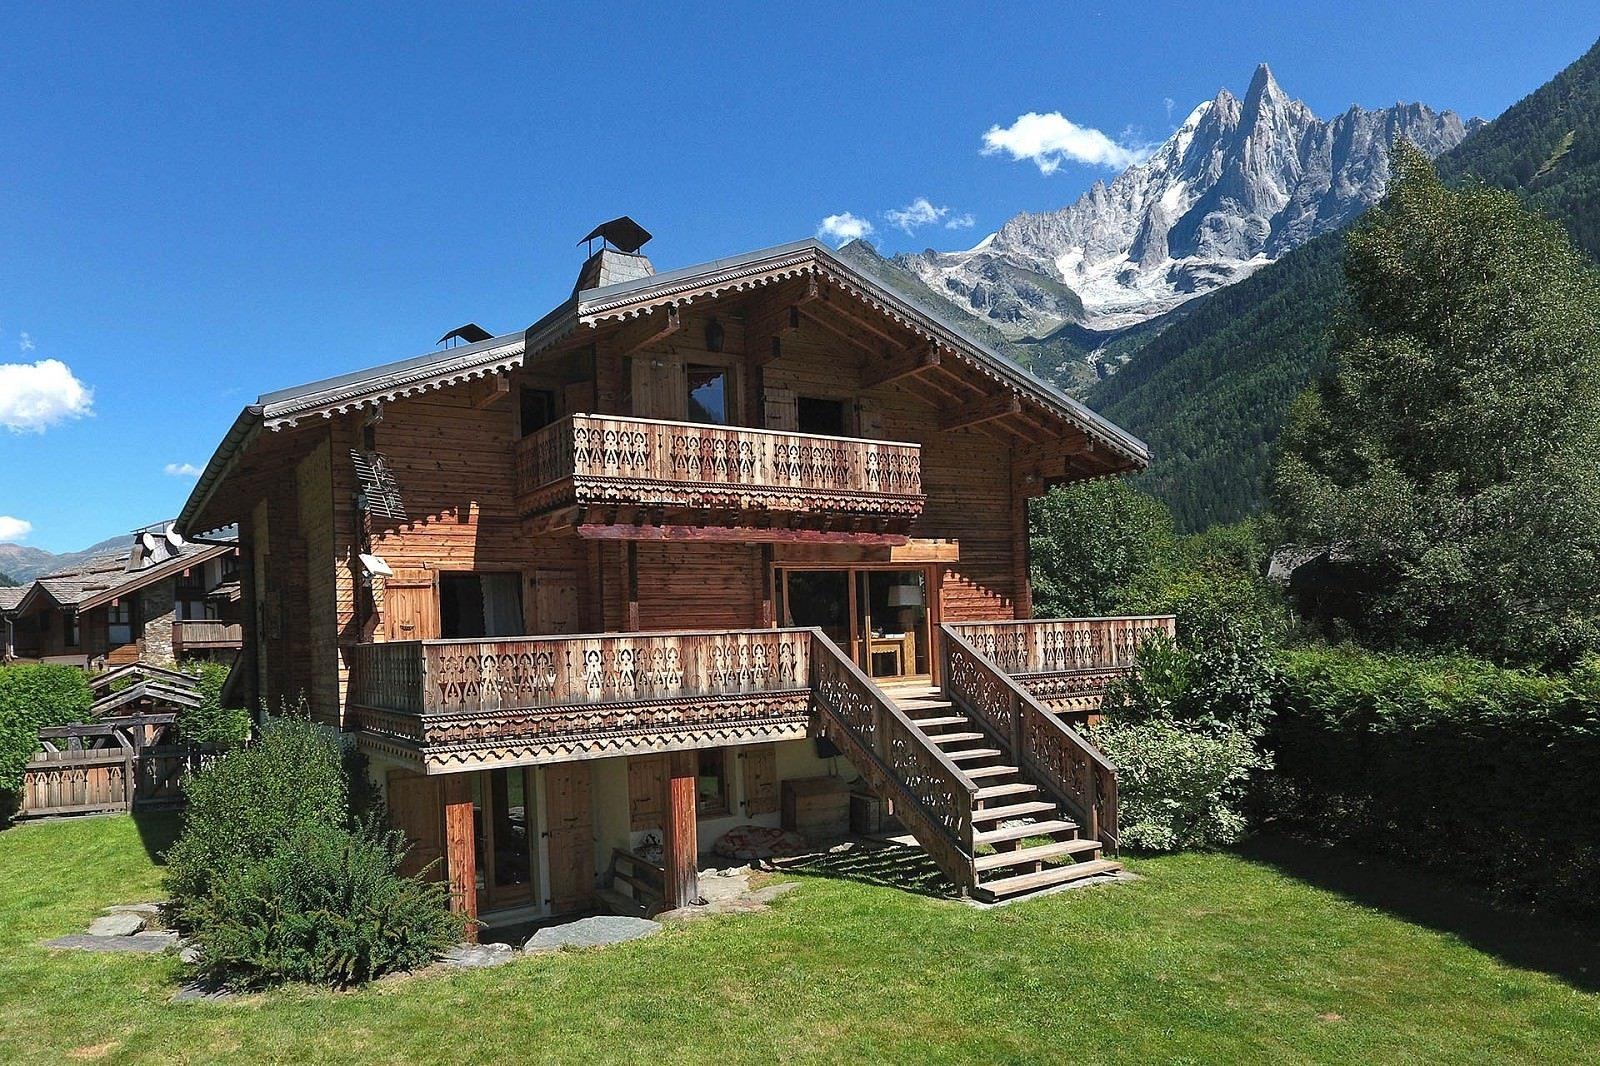 beau-chalet-traditionnel-a-vendre-buanderie-cheminee-terrasse-parking